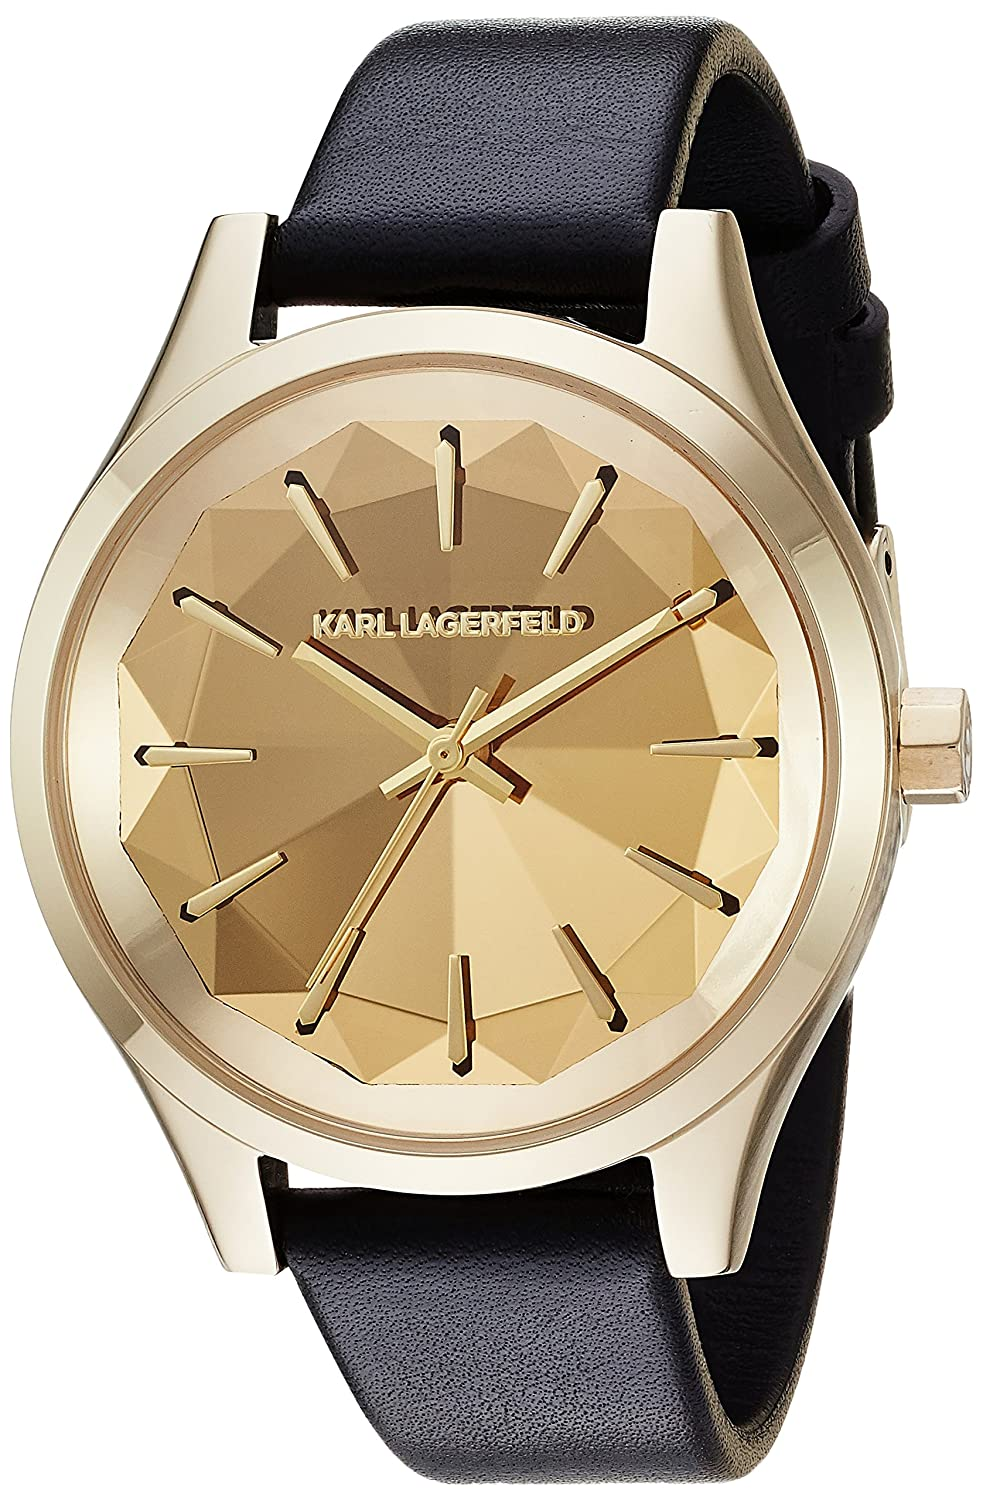 Karl Lagerfeld Women's Janelle Quartz Stainless Steel And Leather Casual Watch, Color Gold Tone, Black (Model: Kl1617) by Karl Lagerfeld